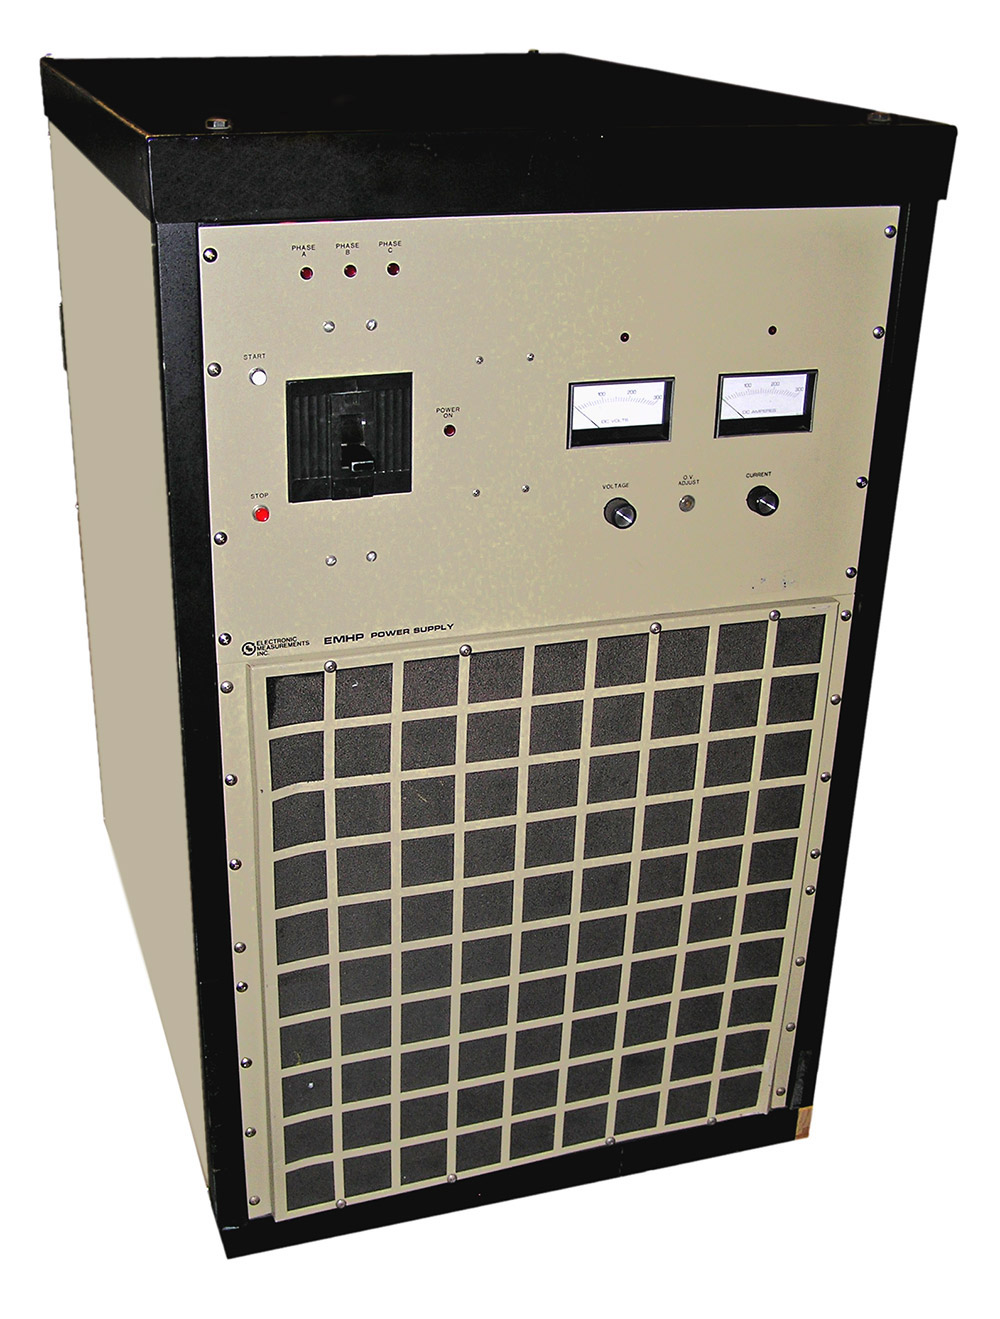 EMI / TDK-Lambda EMHP 30-3000 90 kW DC Power Supply 30V, 3000A